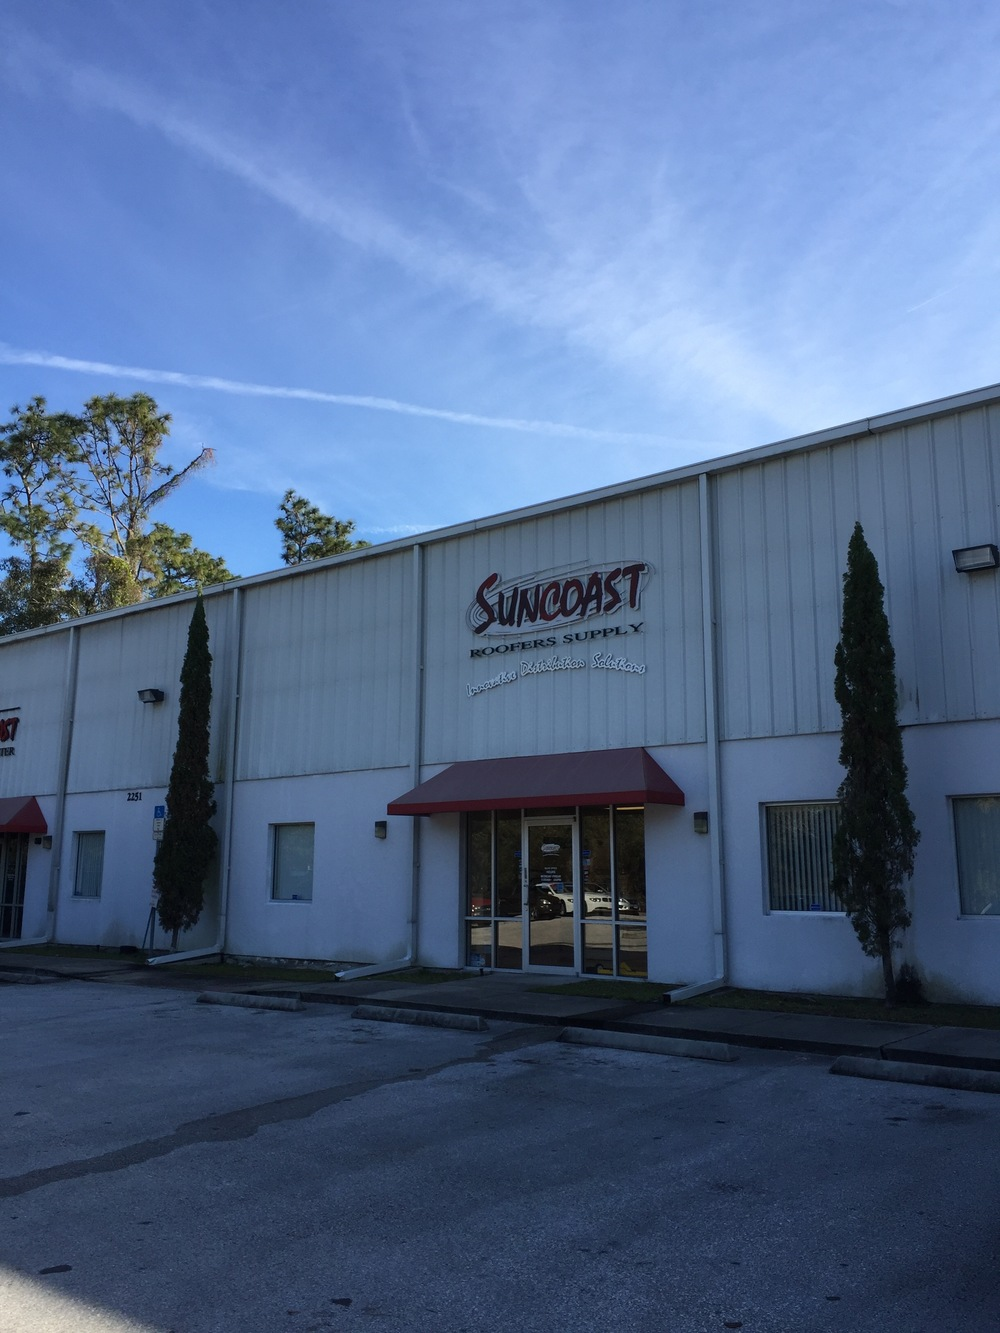 Suncoast Supply